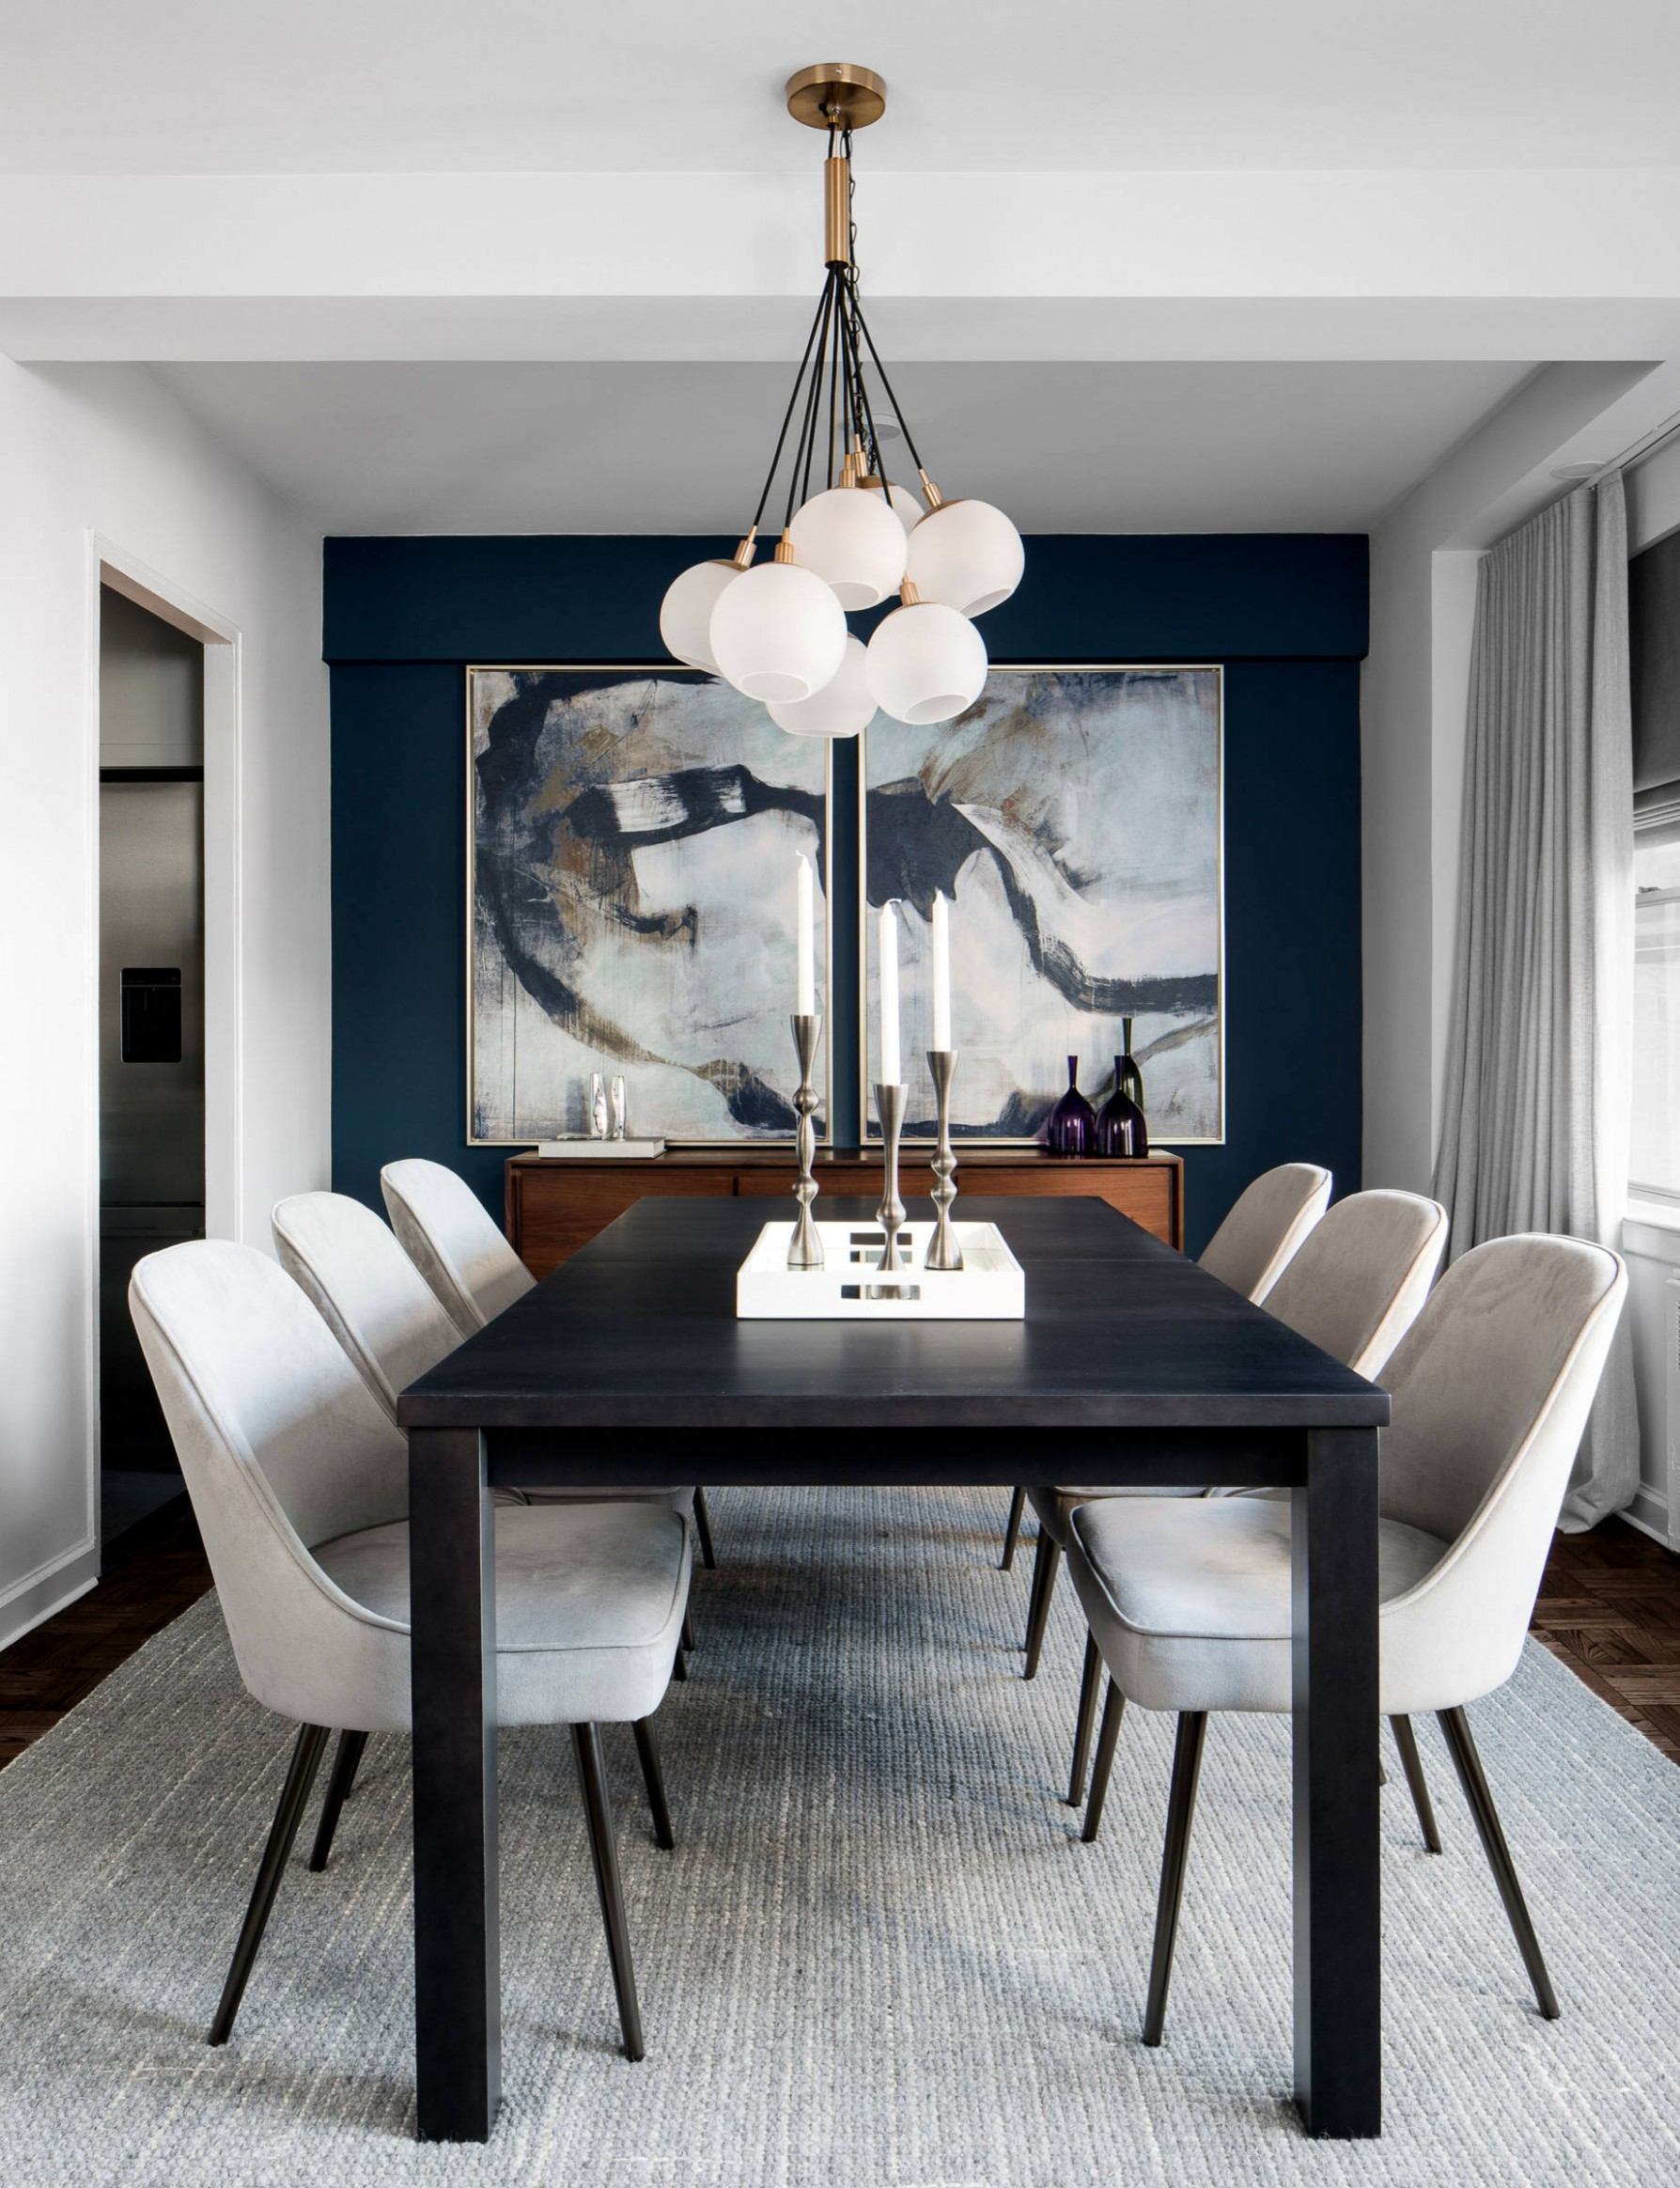 11 Beautiful White Dining Room Pictures & Ideas - November, 11  - Very Dining Room Ideas